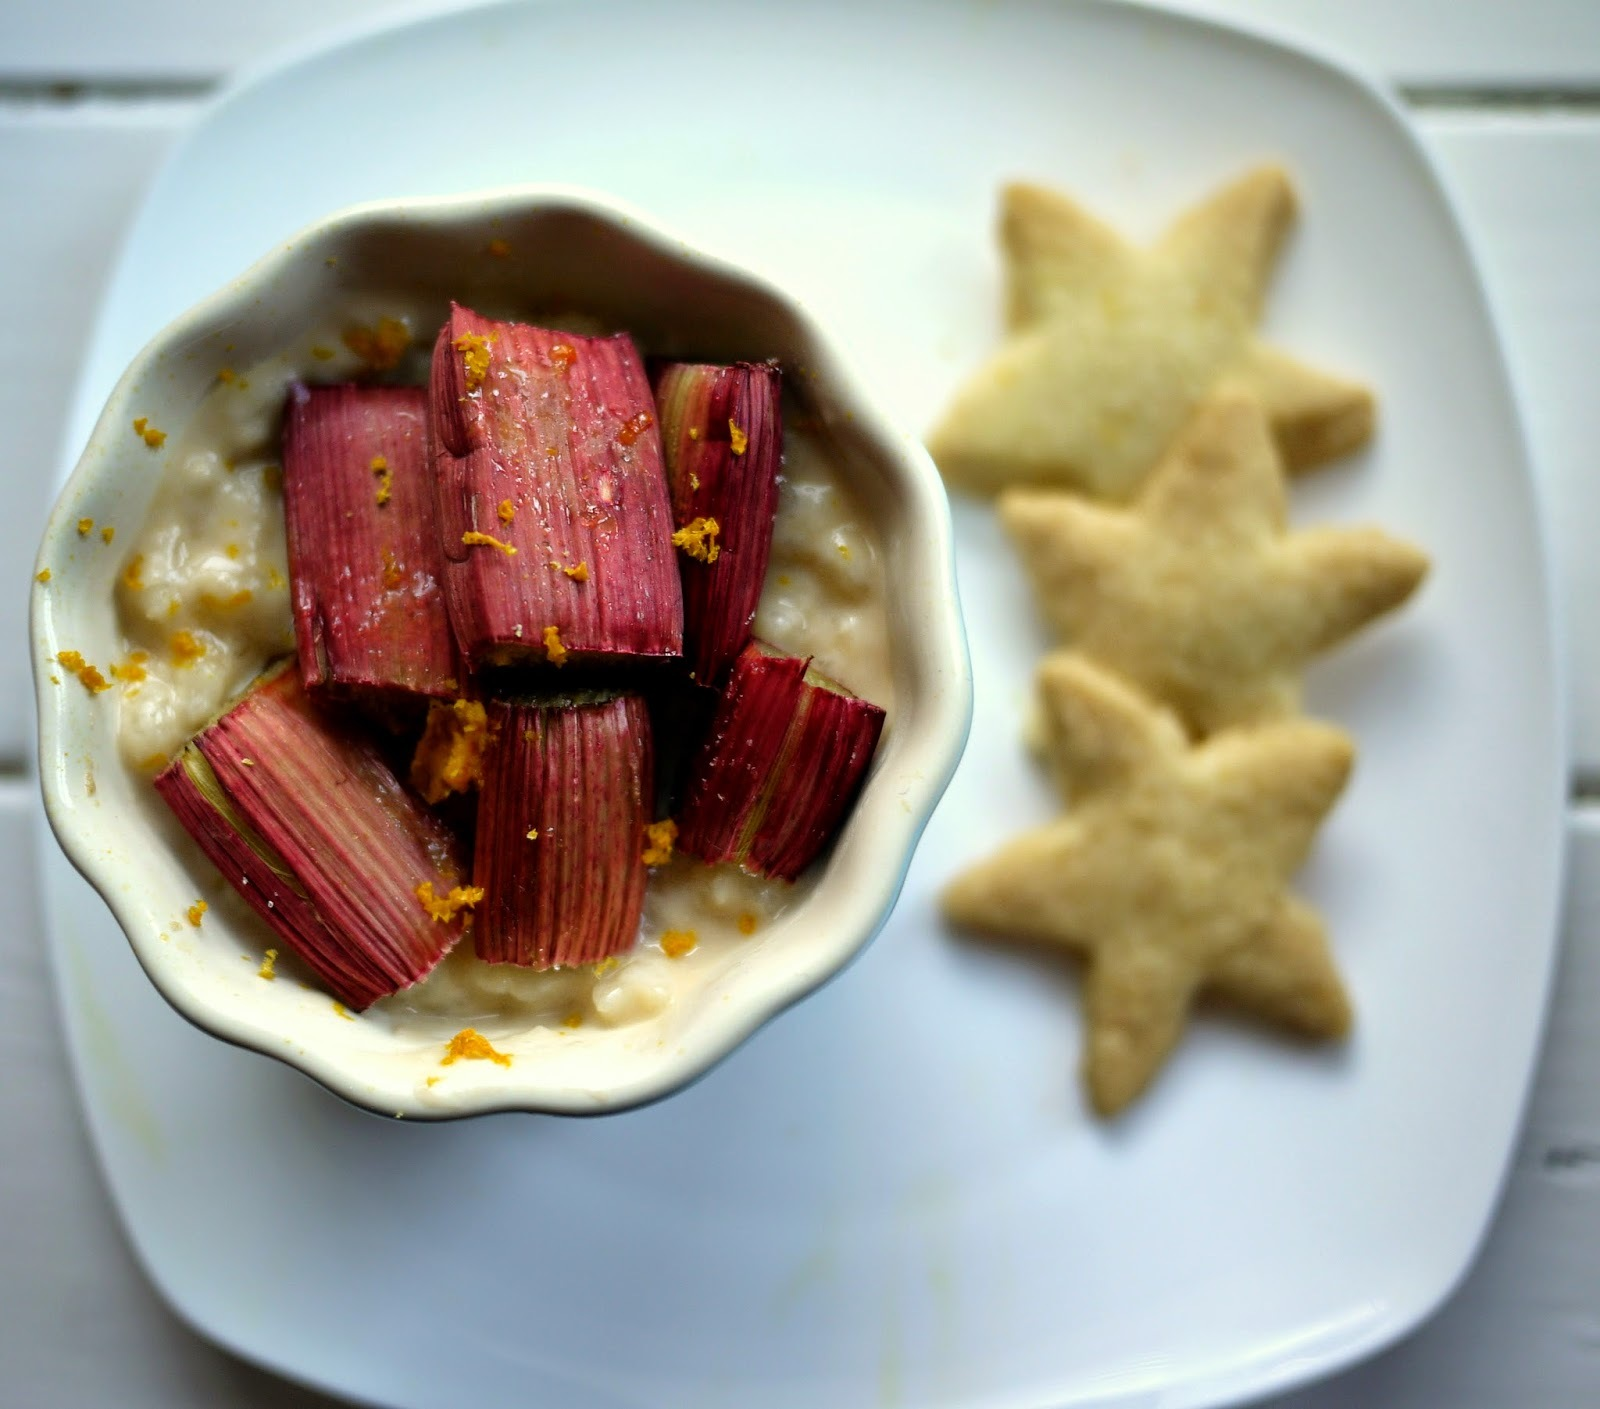 rhubarb and treacle